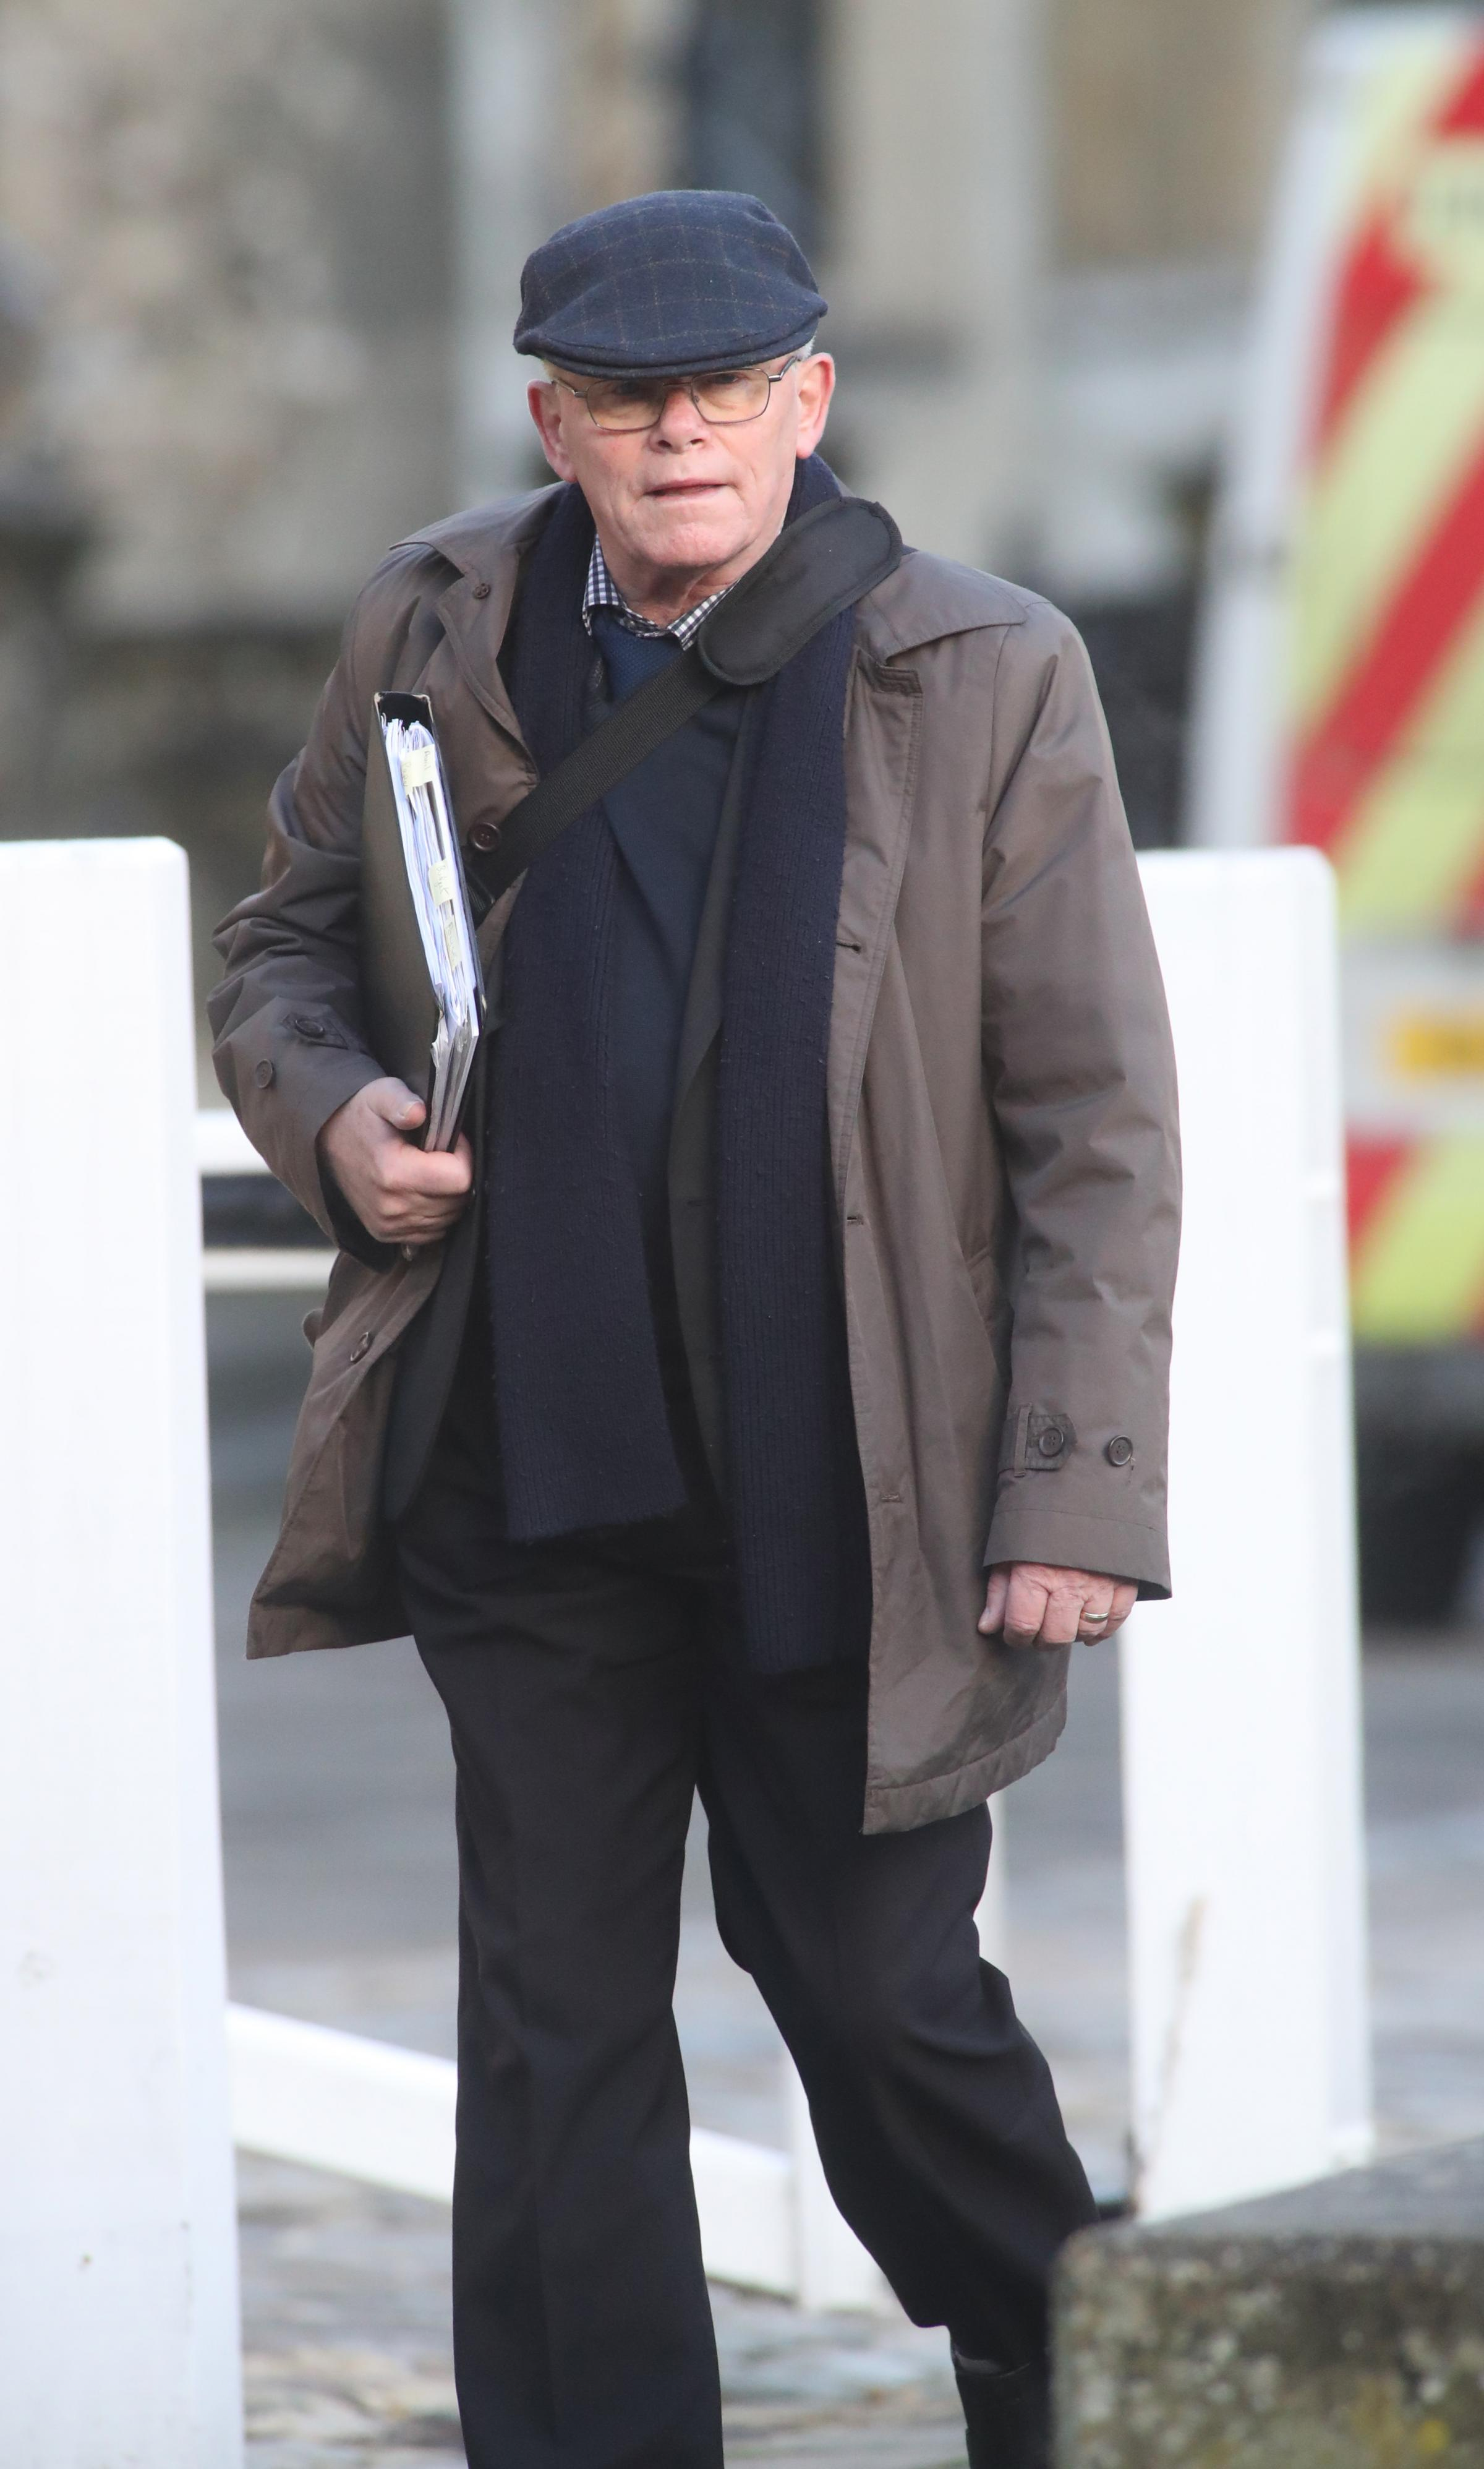 Graham Steed arriving at Winchester Crown Court - Stalking case.